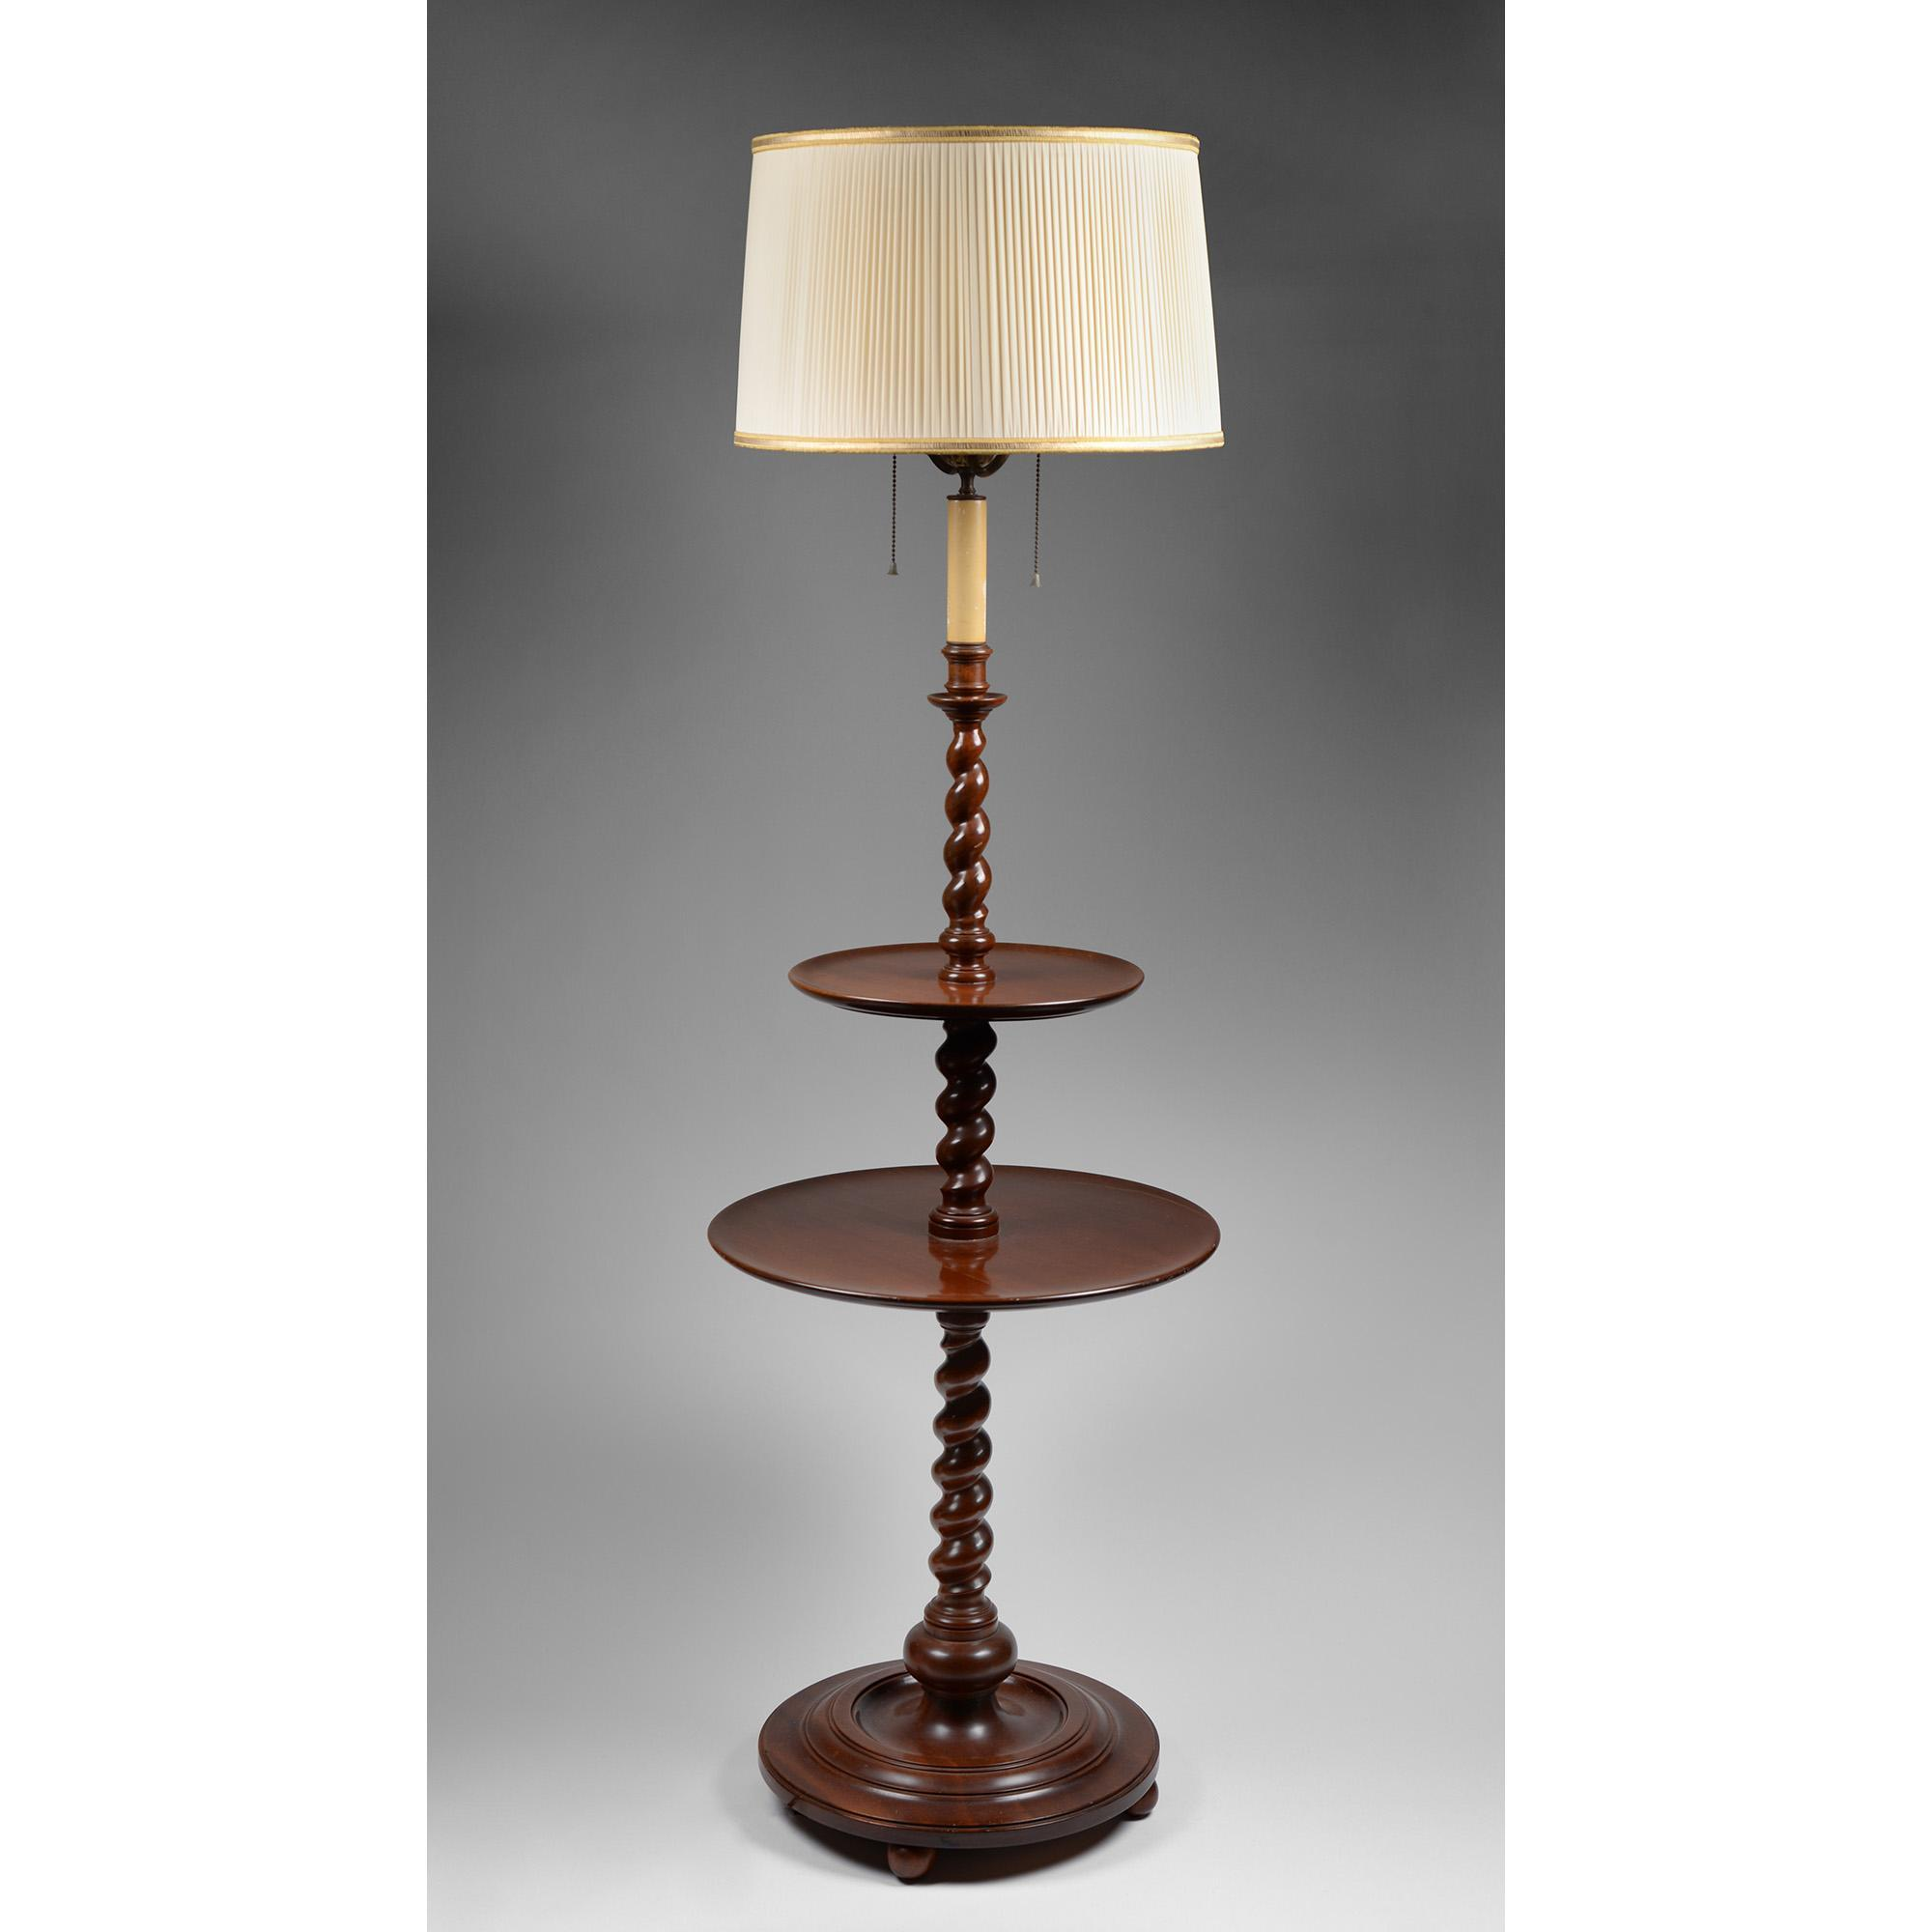 English Carved Walnut Double Pedestal Barley Twist Floor Lamp